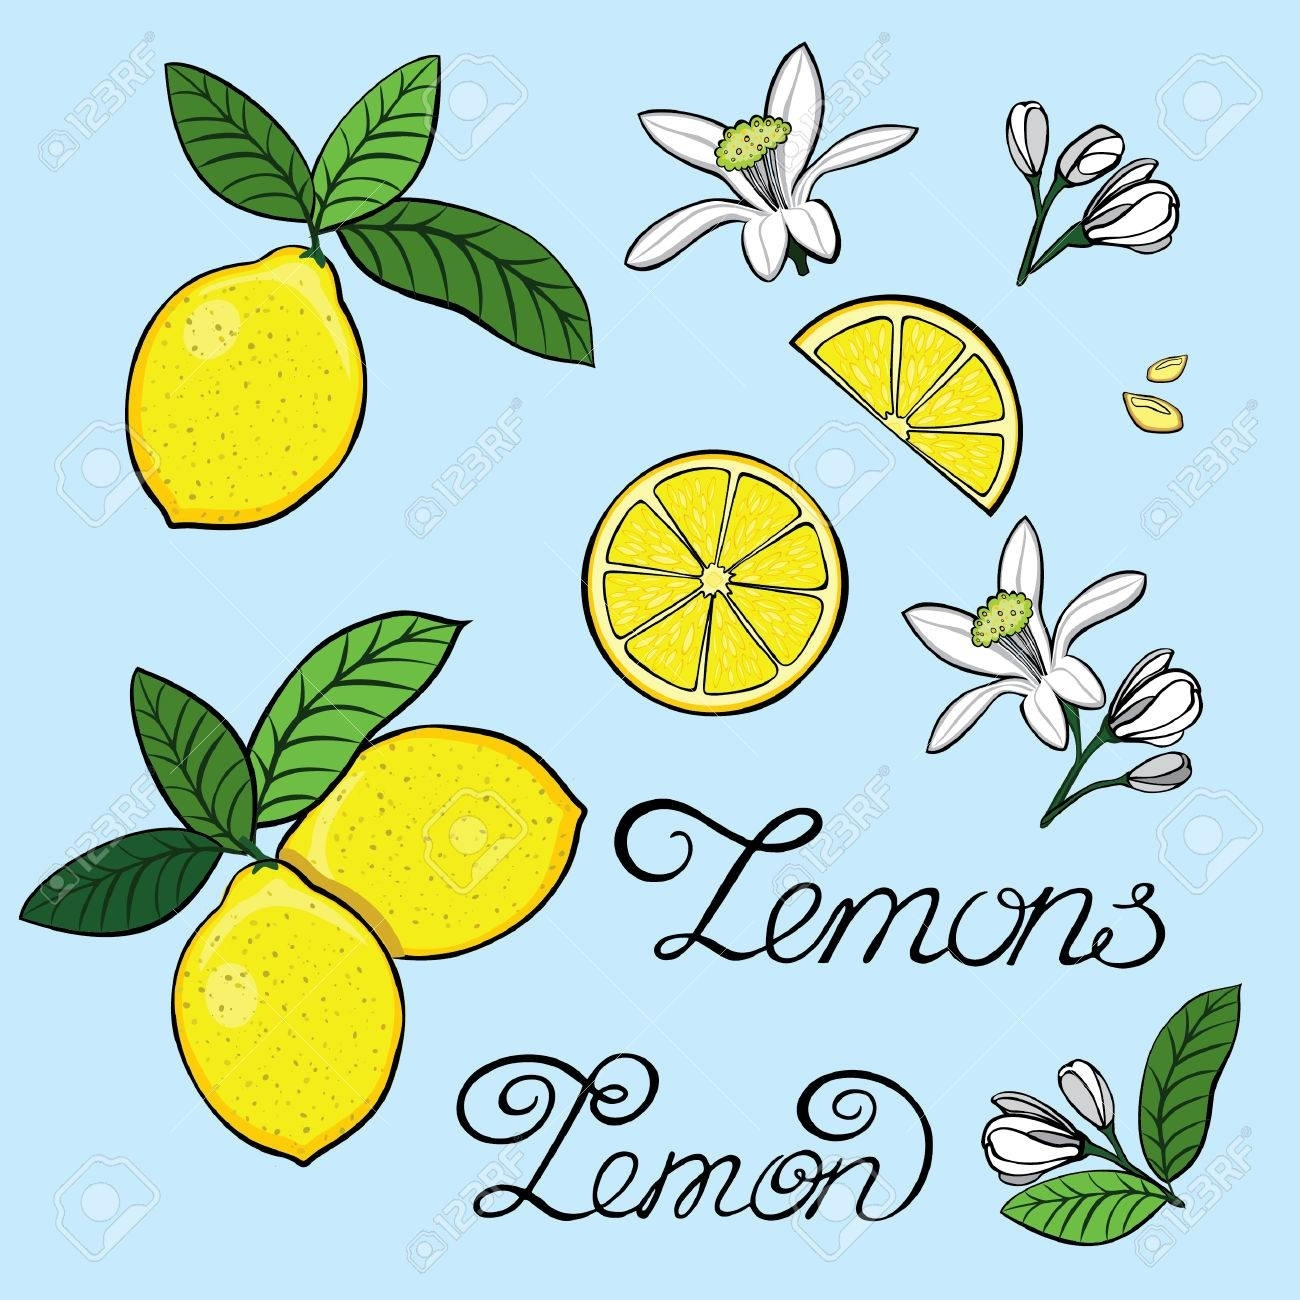 Elements For The Design Of A Lemon, Lemon Tree Flowers, Grain With Newest Lemon Wall Art (Gallery 4 of 20)